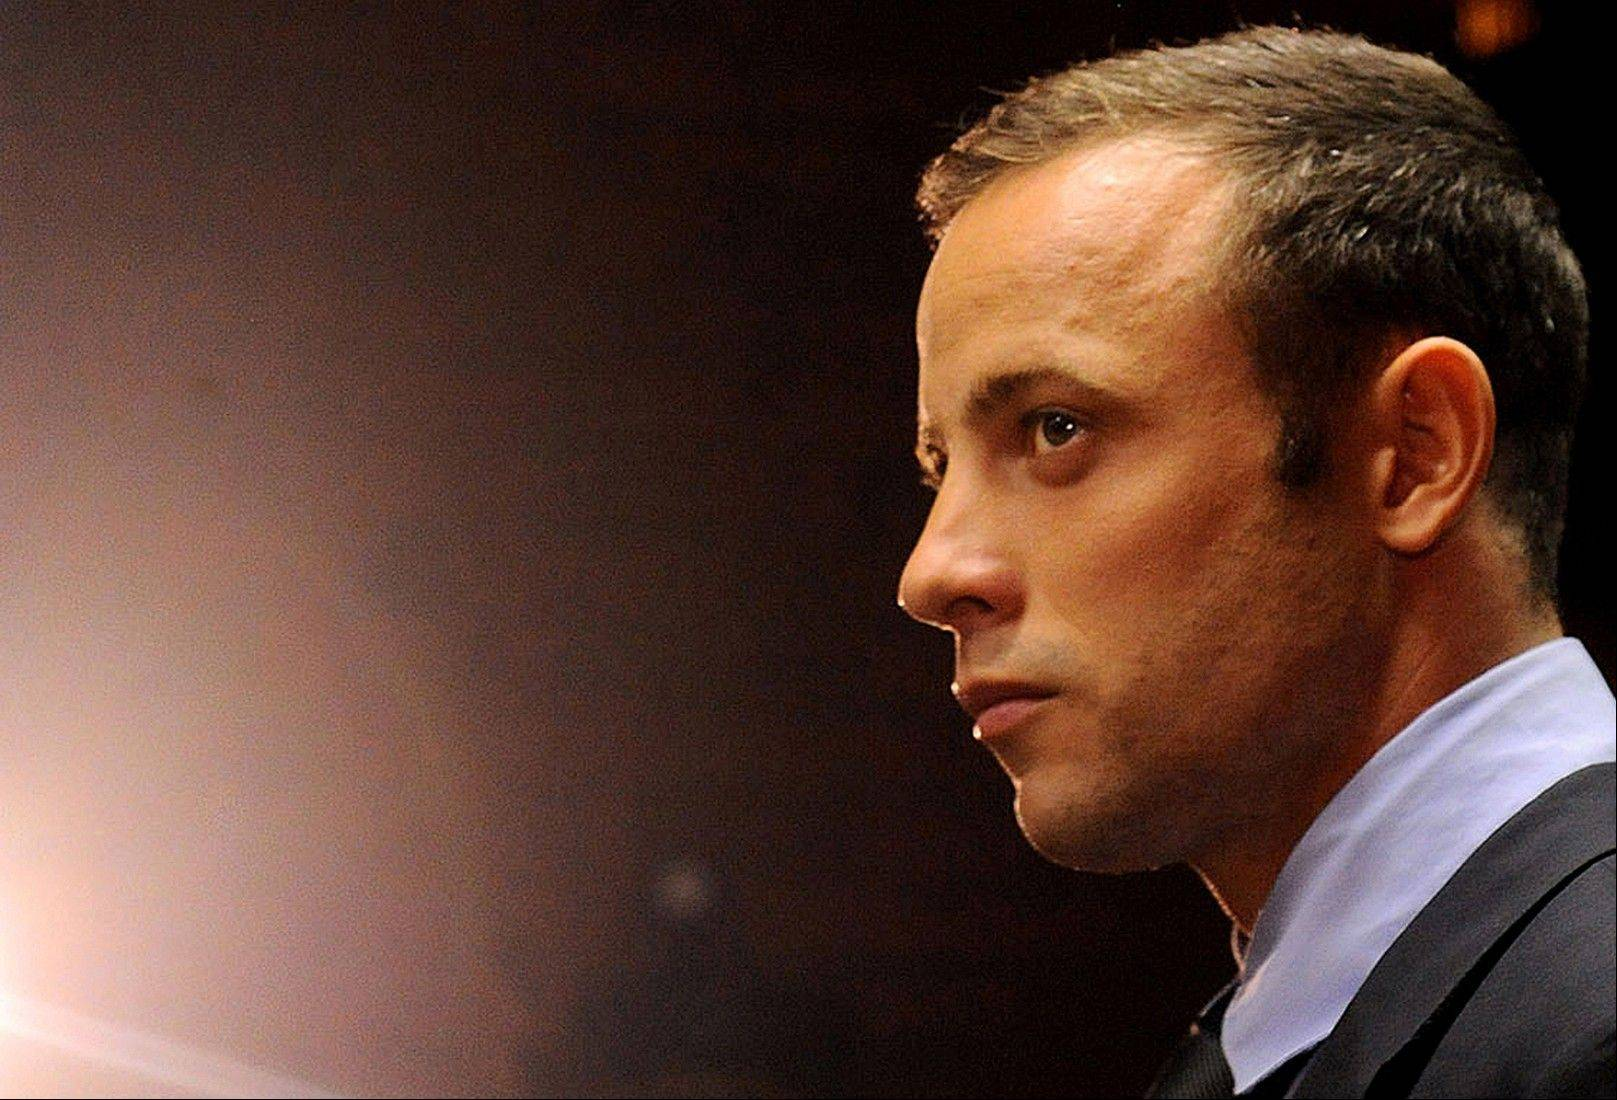 Even if Oscar Pistorius is acquitted of murder, firearms and legal experts in South Africa believe that, by his own account, the star violated basic gun-handling regulations by shooting into a closed door without knowing who was behind it, exposing himself to the lesser but still serious charge of culpable homicide.